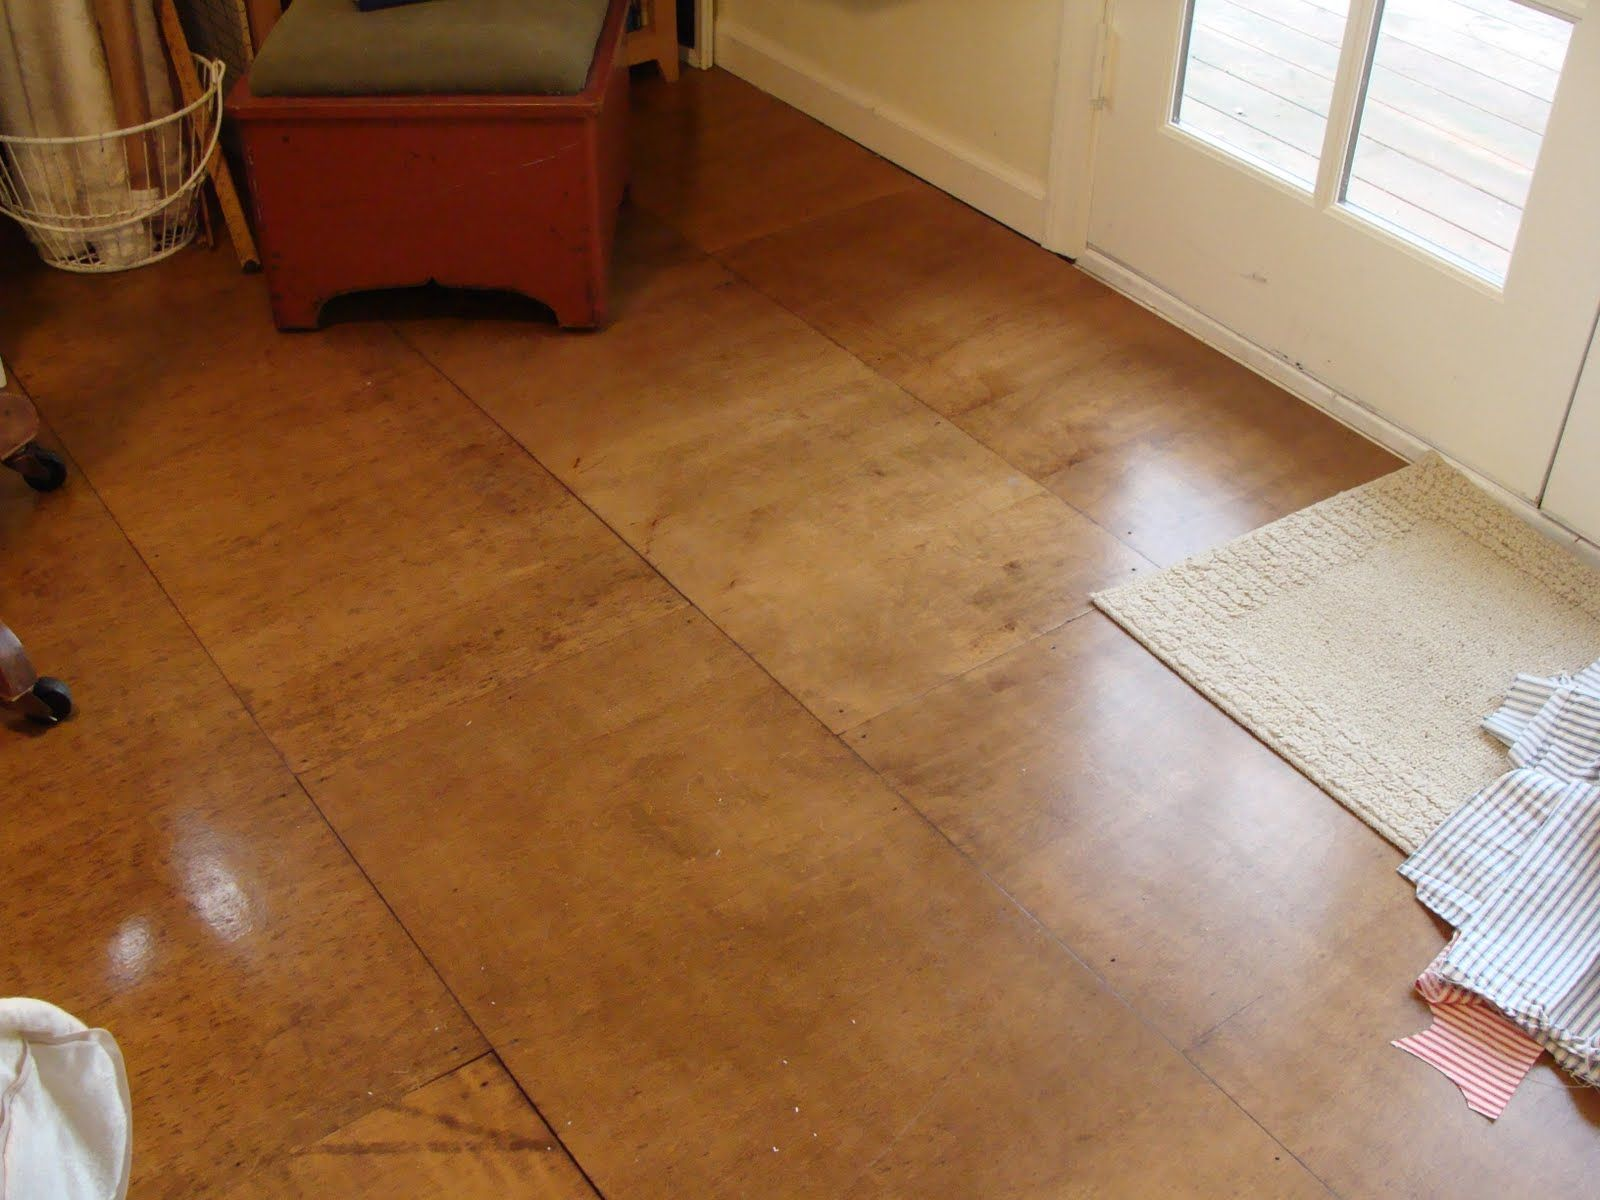 Remodeling series part 5 garage conversion offices hardwood plywood flooring ideas we floored the area with a maple hardwood plywood they came in dailygadgetfo Images